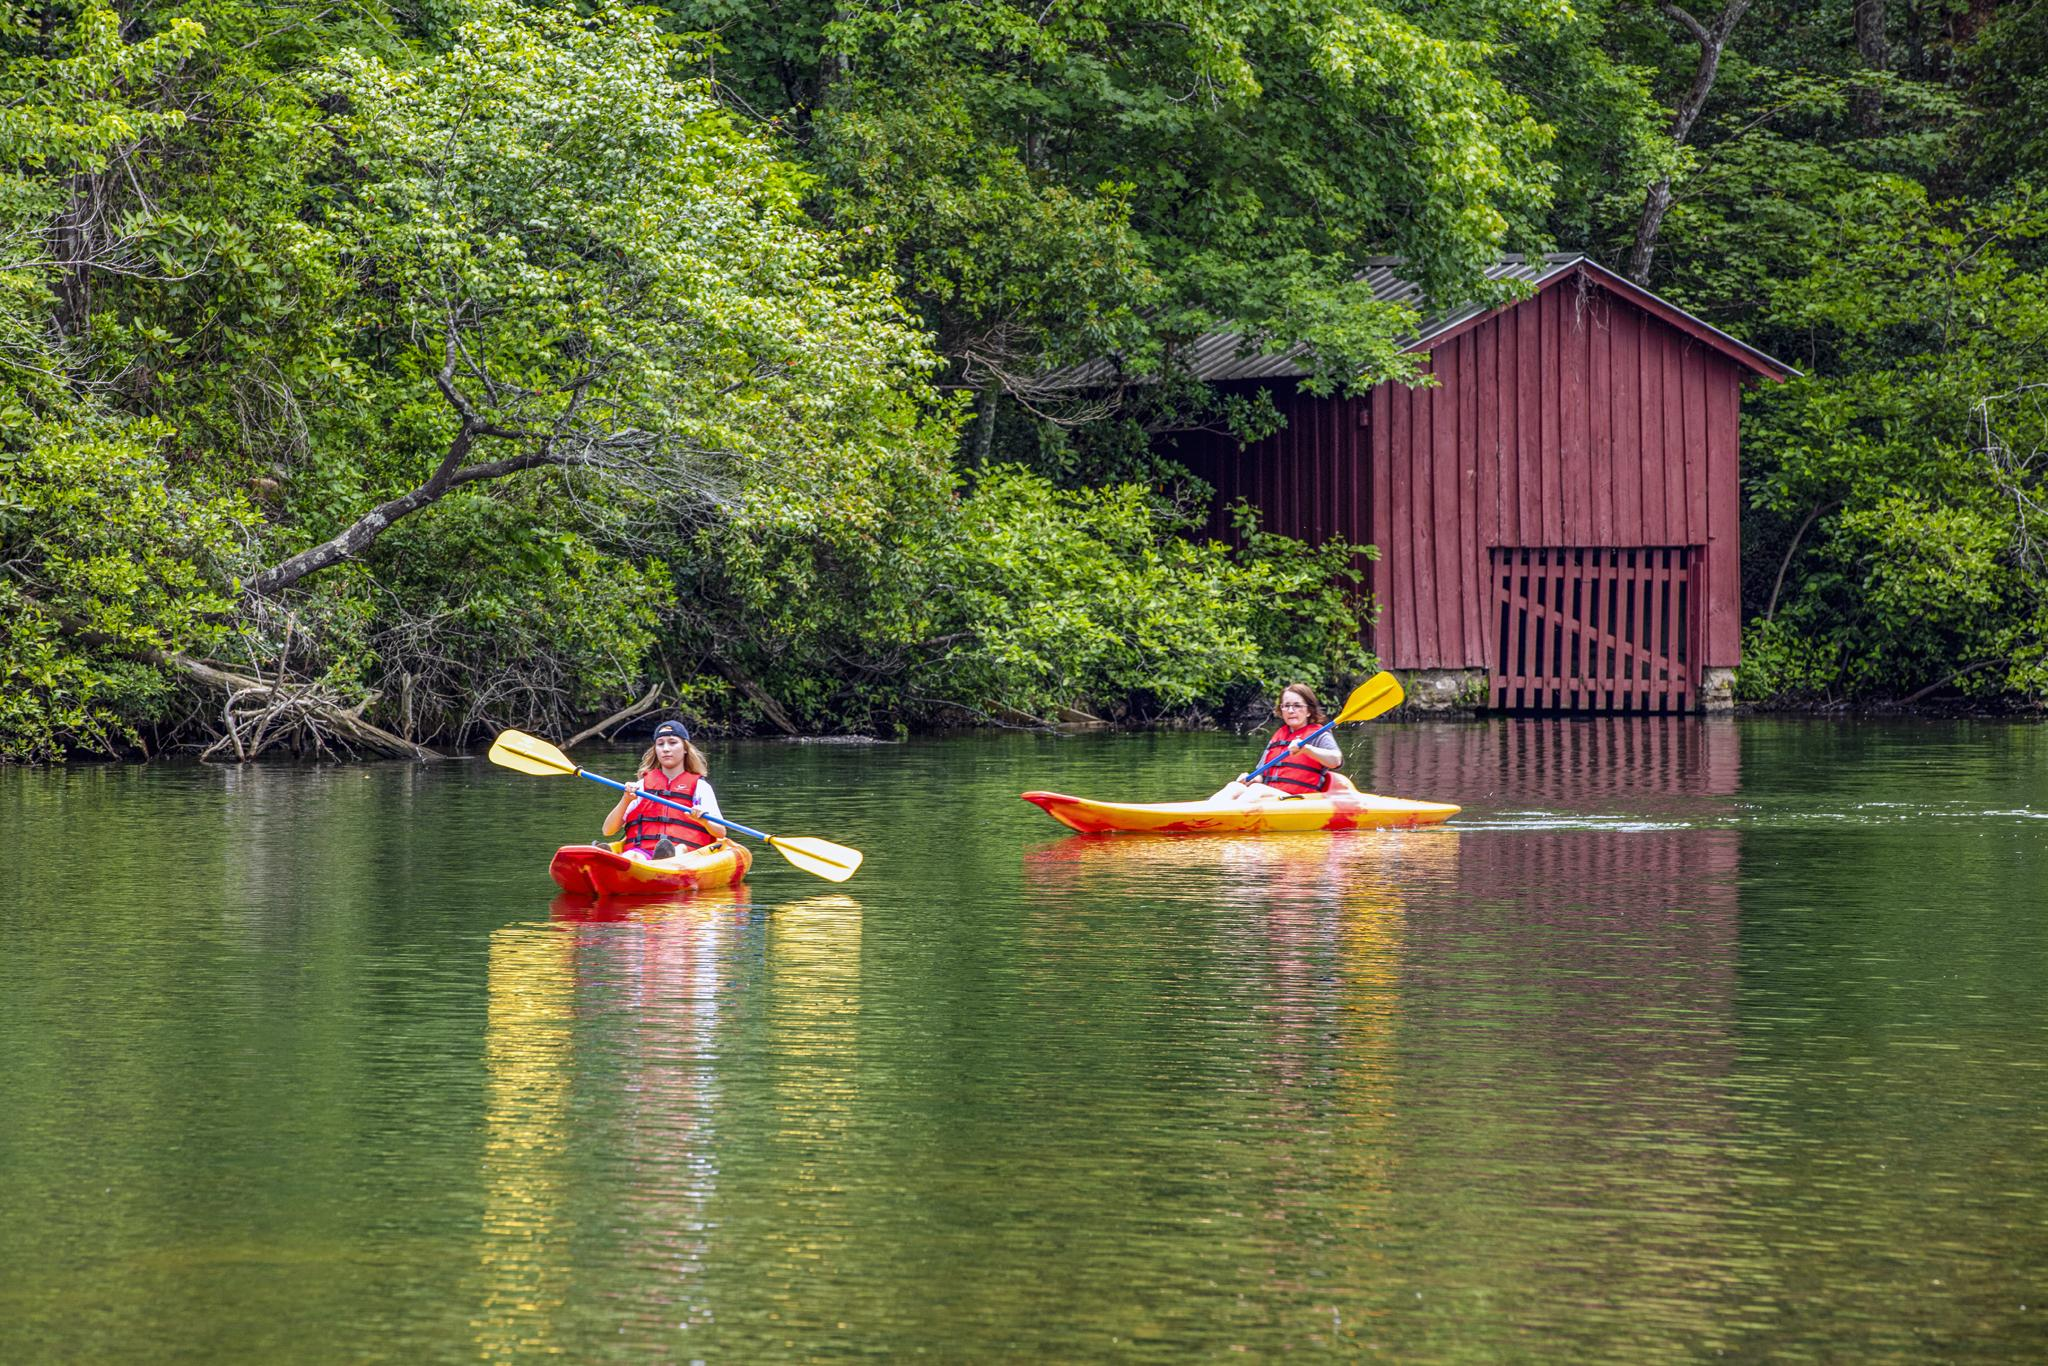 DeSoto State Park provides kayak rentals for exploring the peaceful lake. – Scott Baker